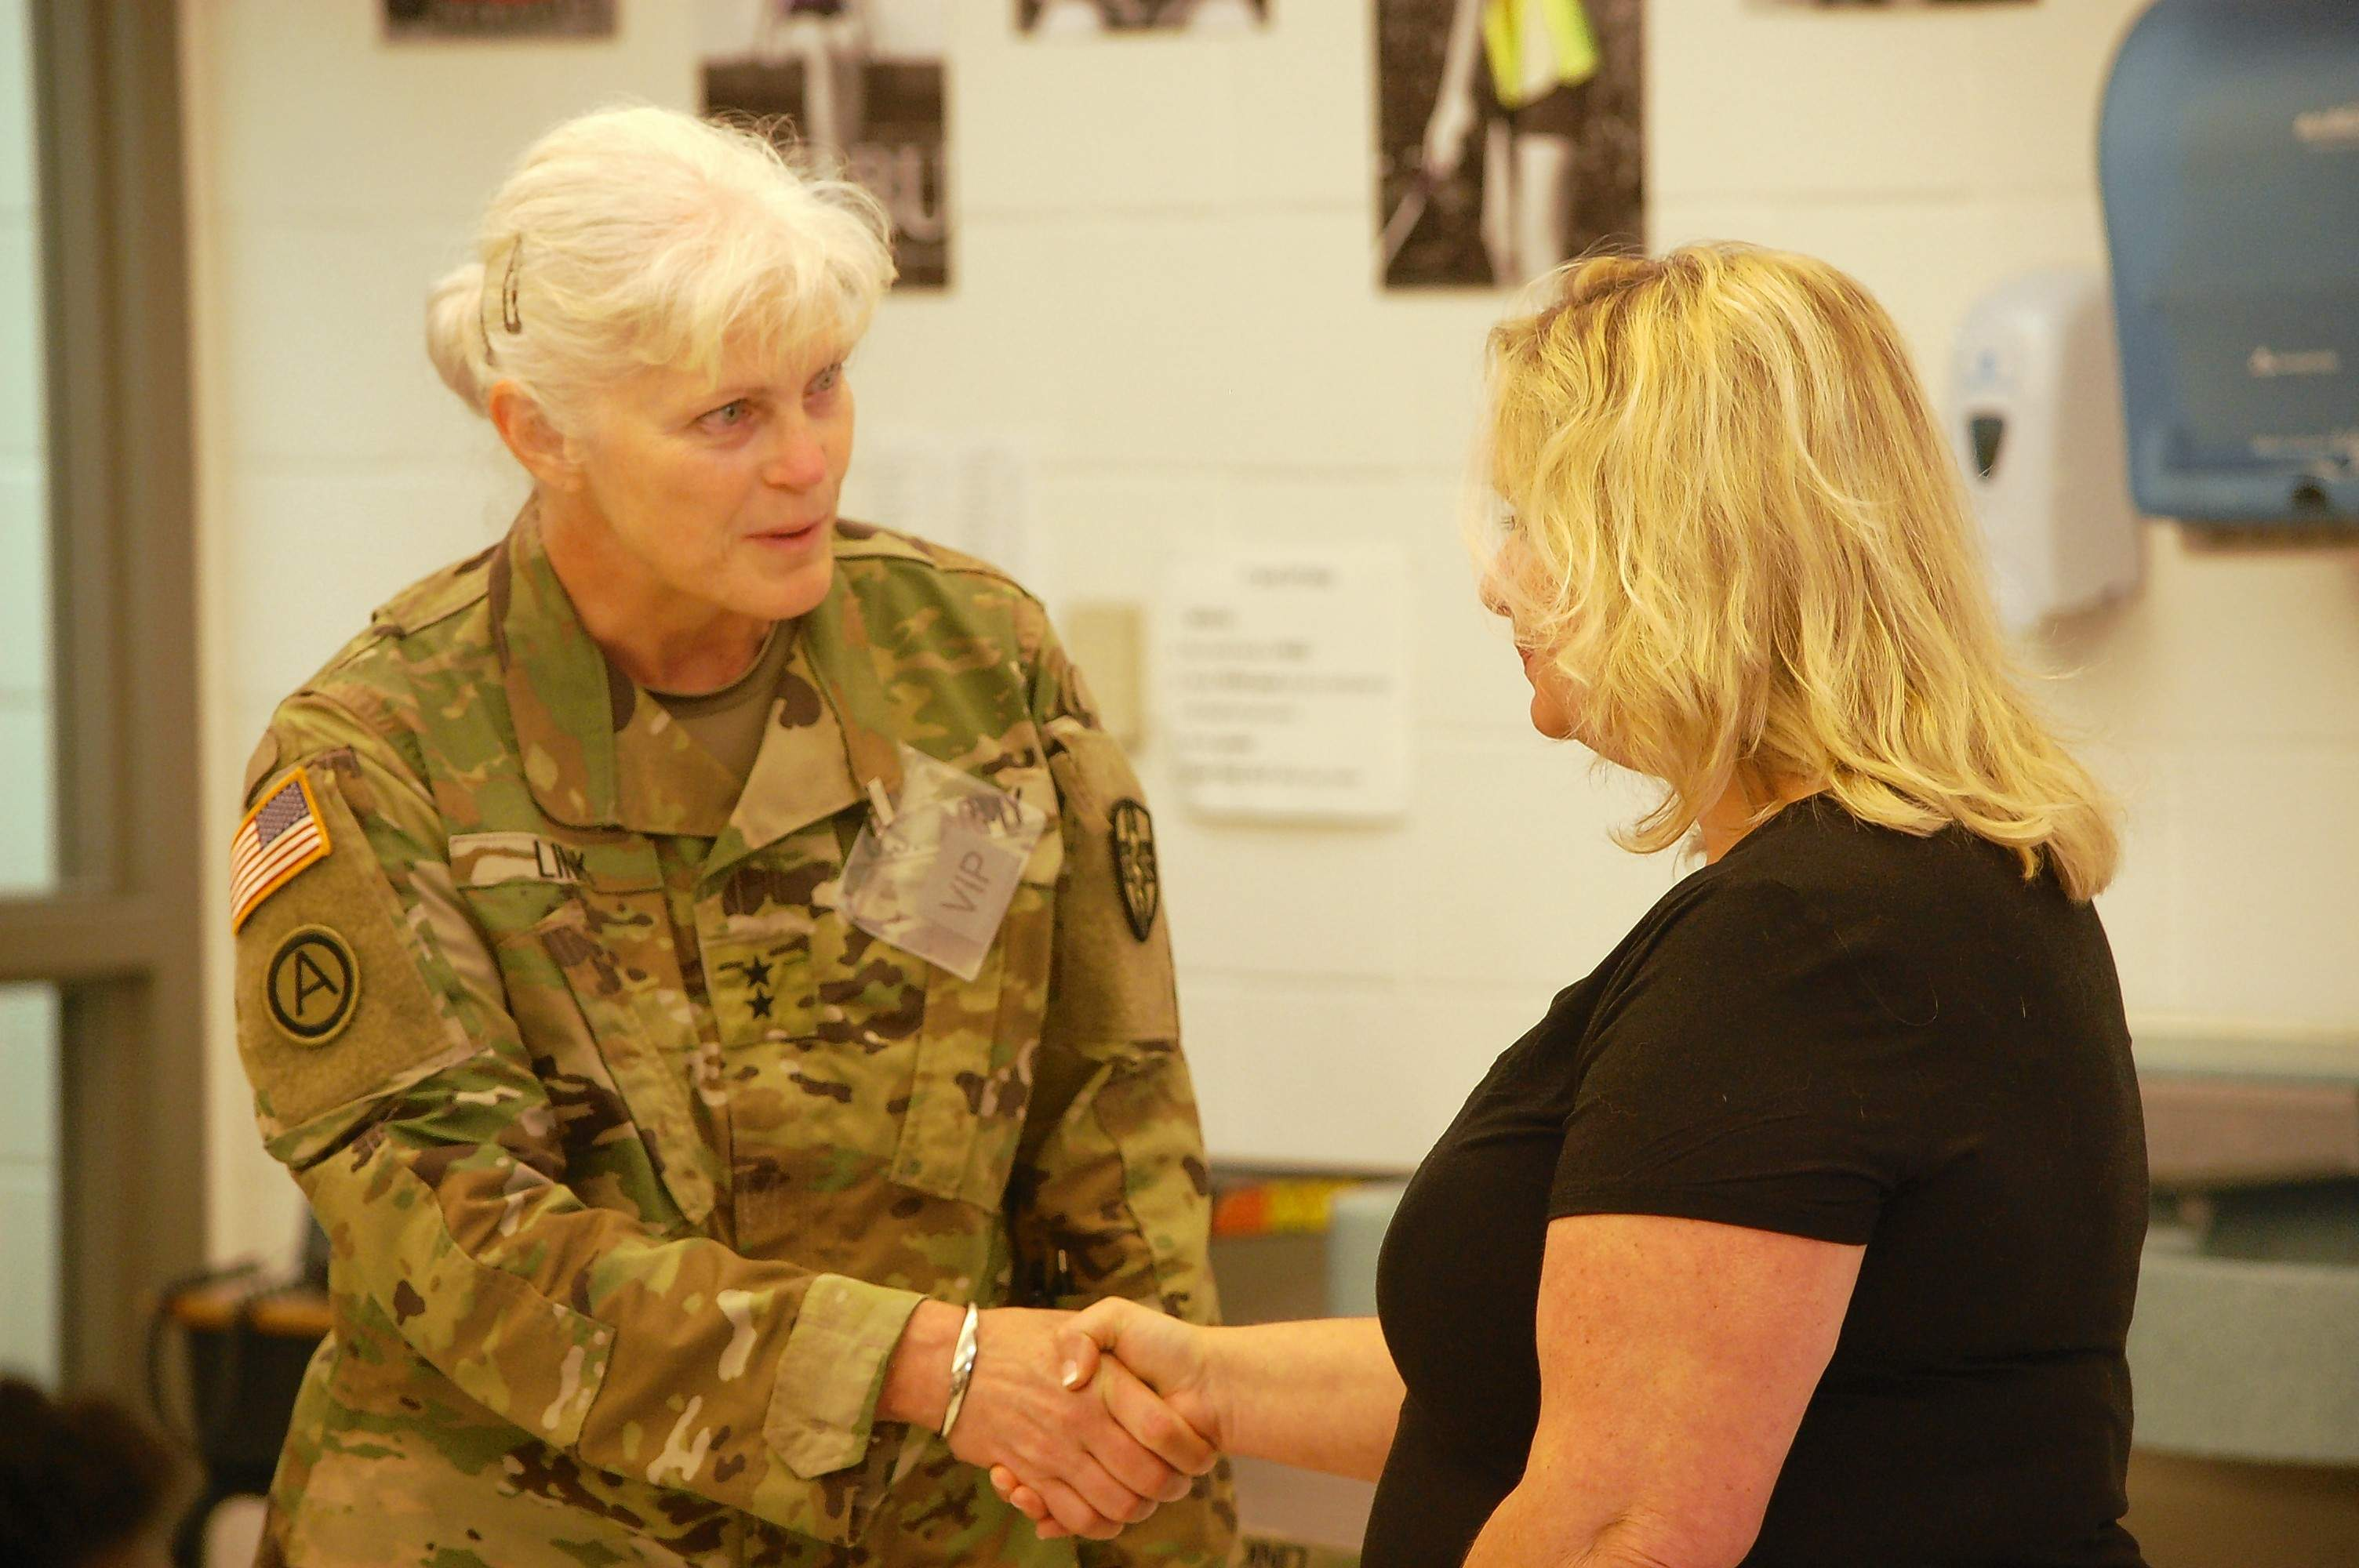 Major General Mary Link, Army Reserve Medical Command commanding general, presents Kim Watson with a medallion for her service to the Southern Care Innovative Readiness Training healthcare mission underway at Harrisburg Middle School. Watson, of Harrisburg, is a senior account manager for the Illinois Department of Commerce and Economic Opportunity.